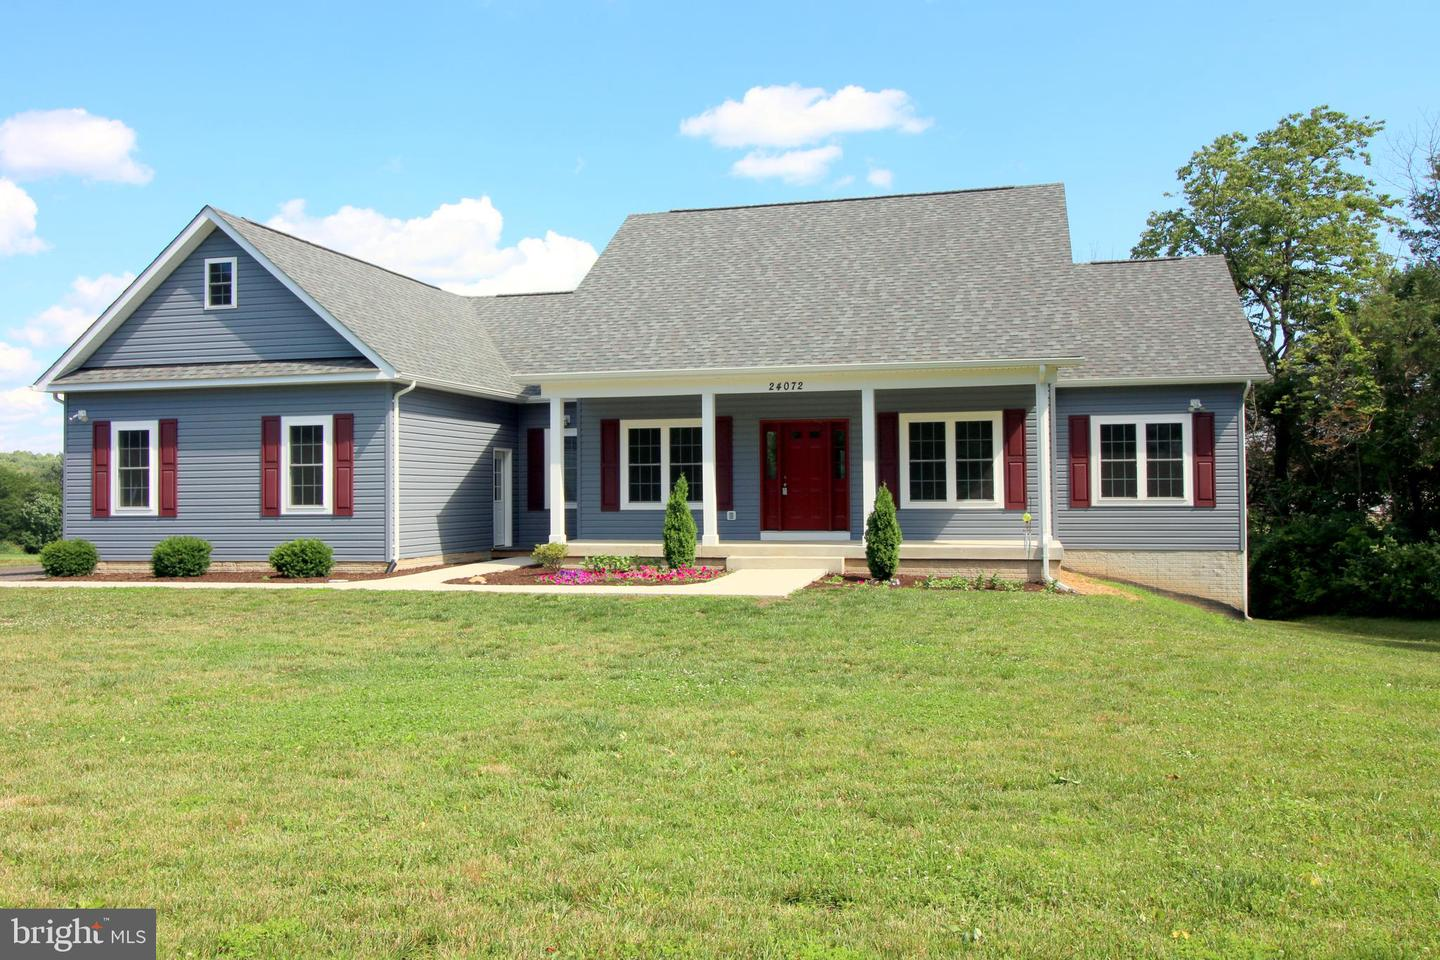 Single Family for Sale at 24072 Old Carolina Rd Aldie, Virginia 20105 United States